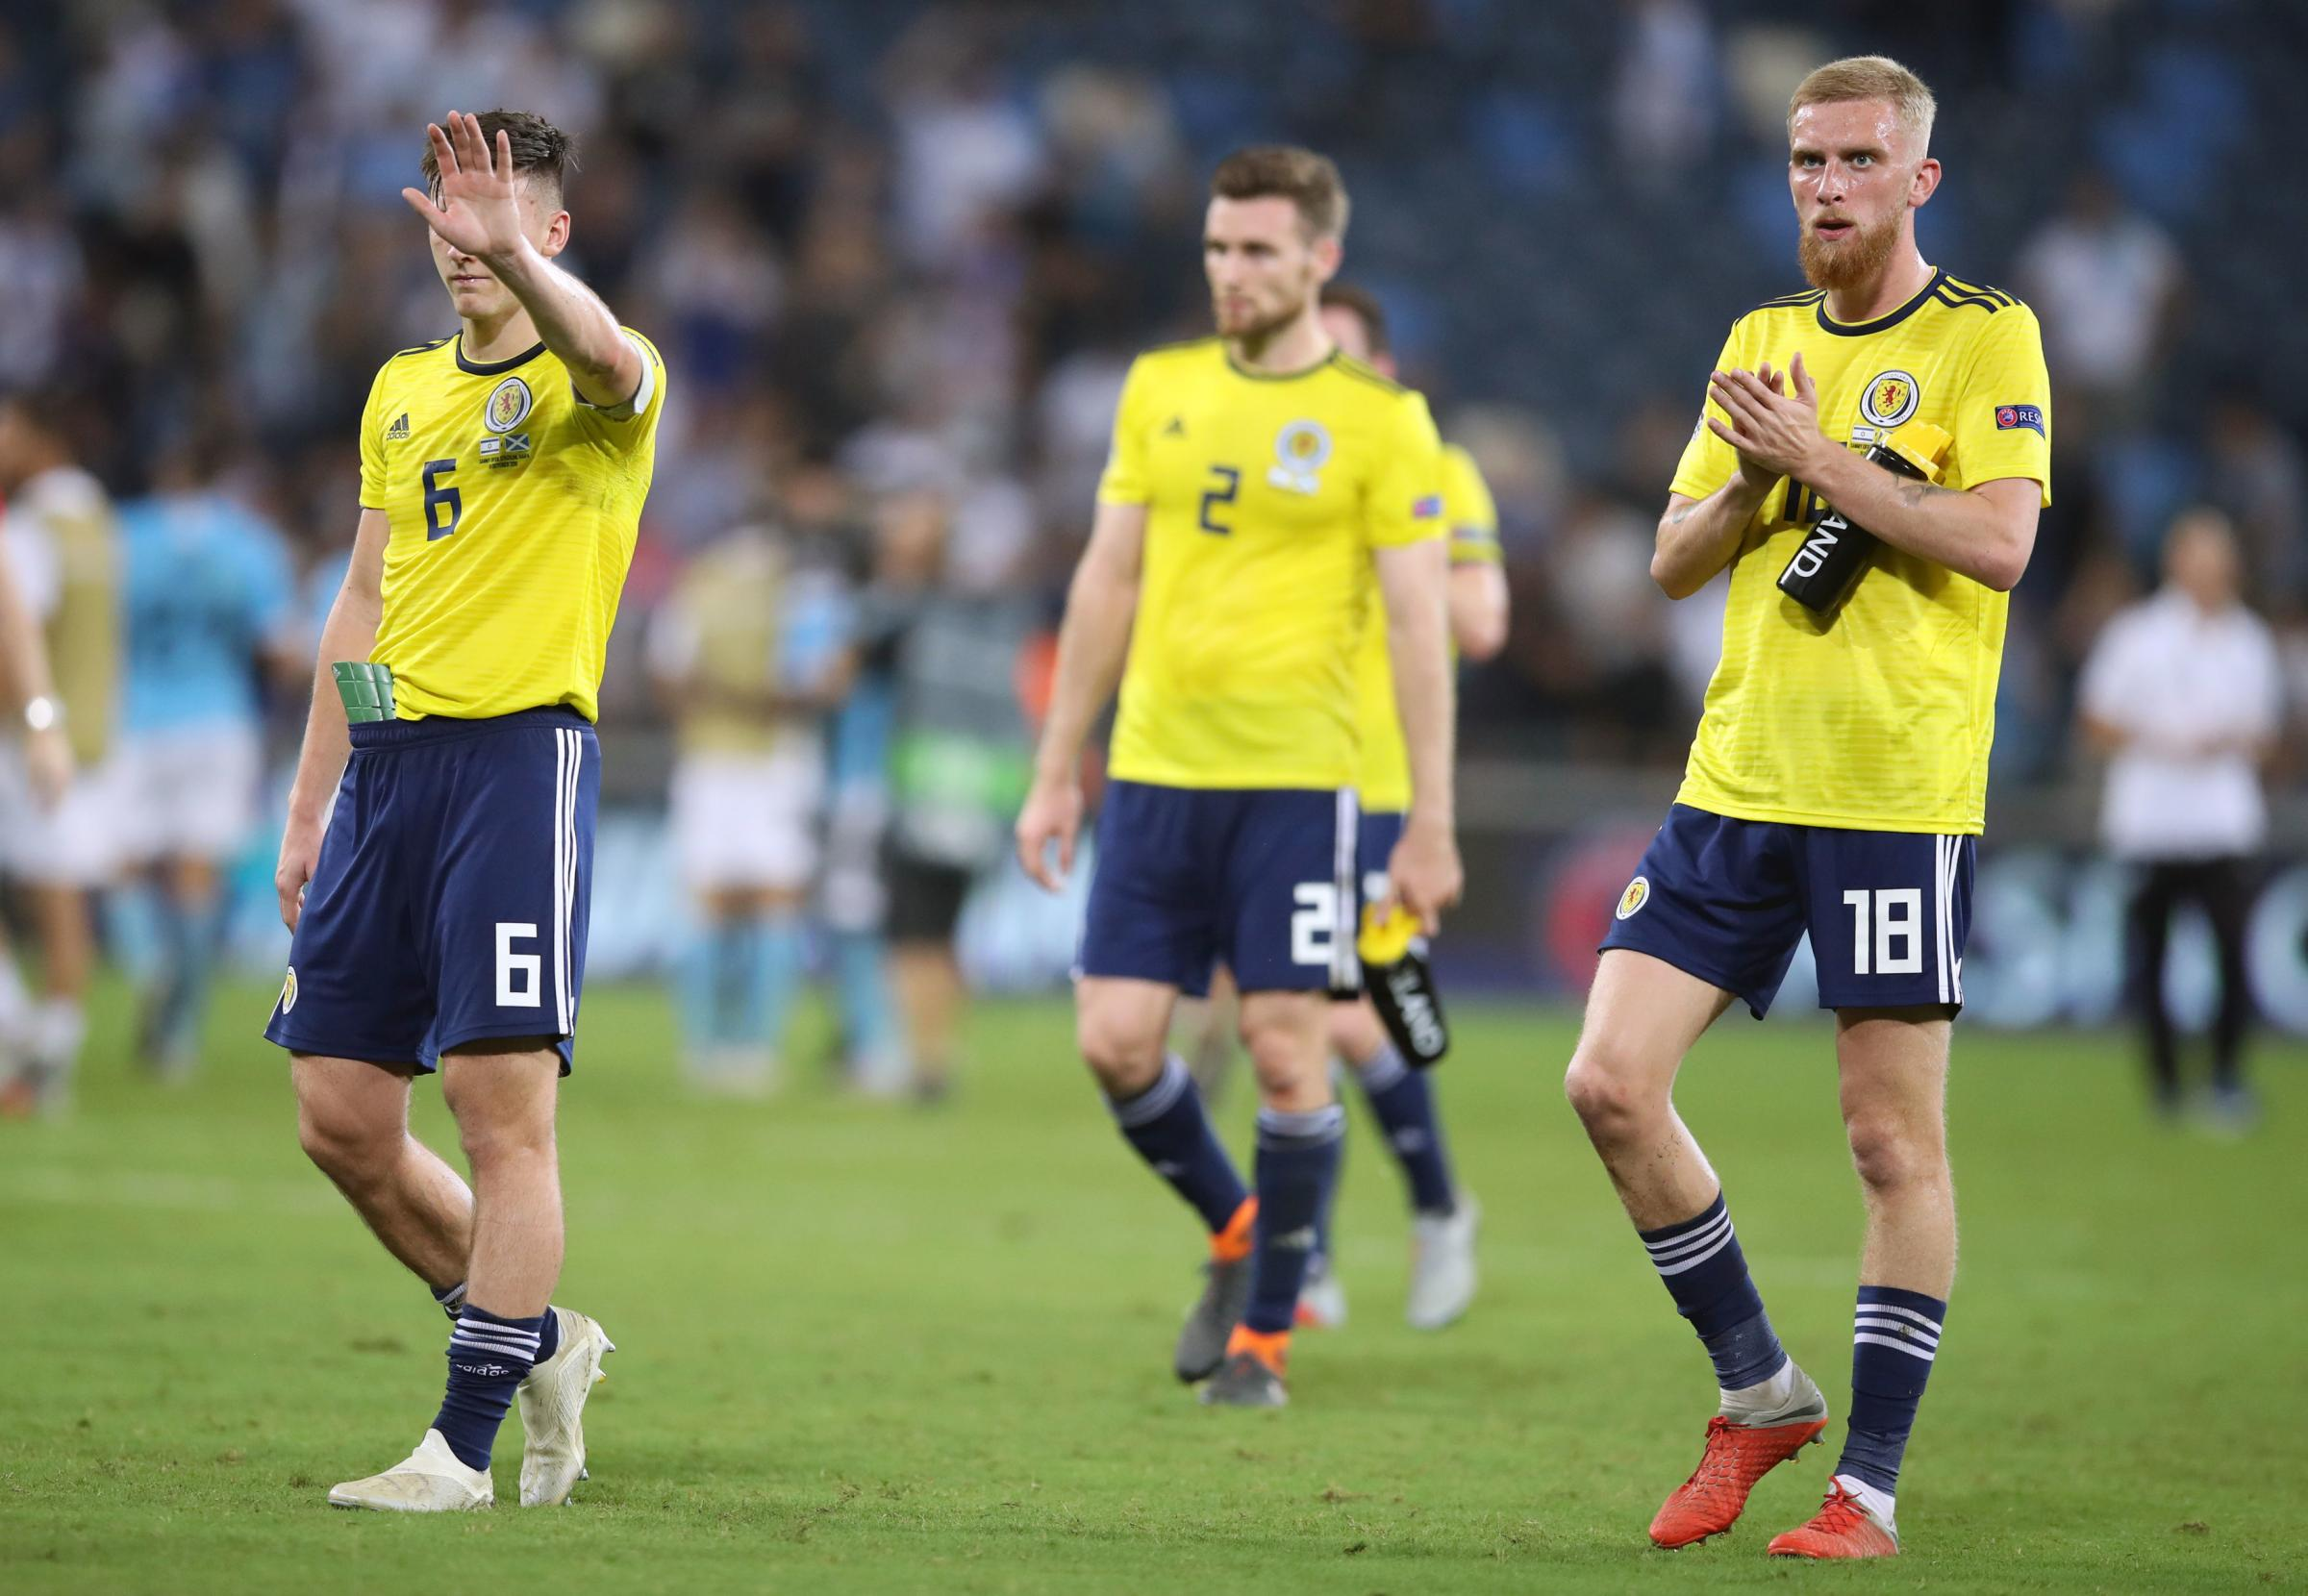 Scotland's Kieran Tierney (left) and Oliver McBurnie acknowledge the fans after the UEFA Nations League Group C1 match at the Sammy Ofer Stadium, Haifa. PRESS ASSOCIATION Photo. Picture date: Thursday October 11, 2018. See PA story SOCCE